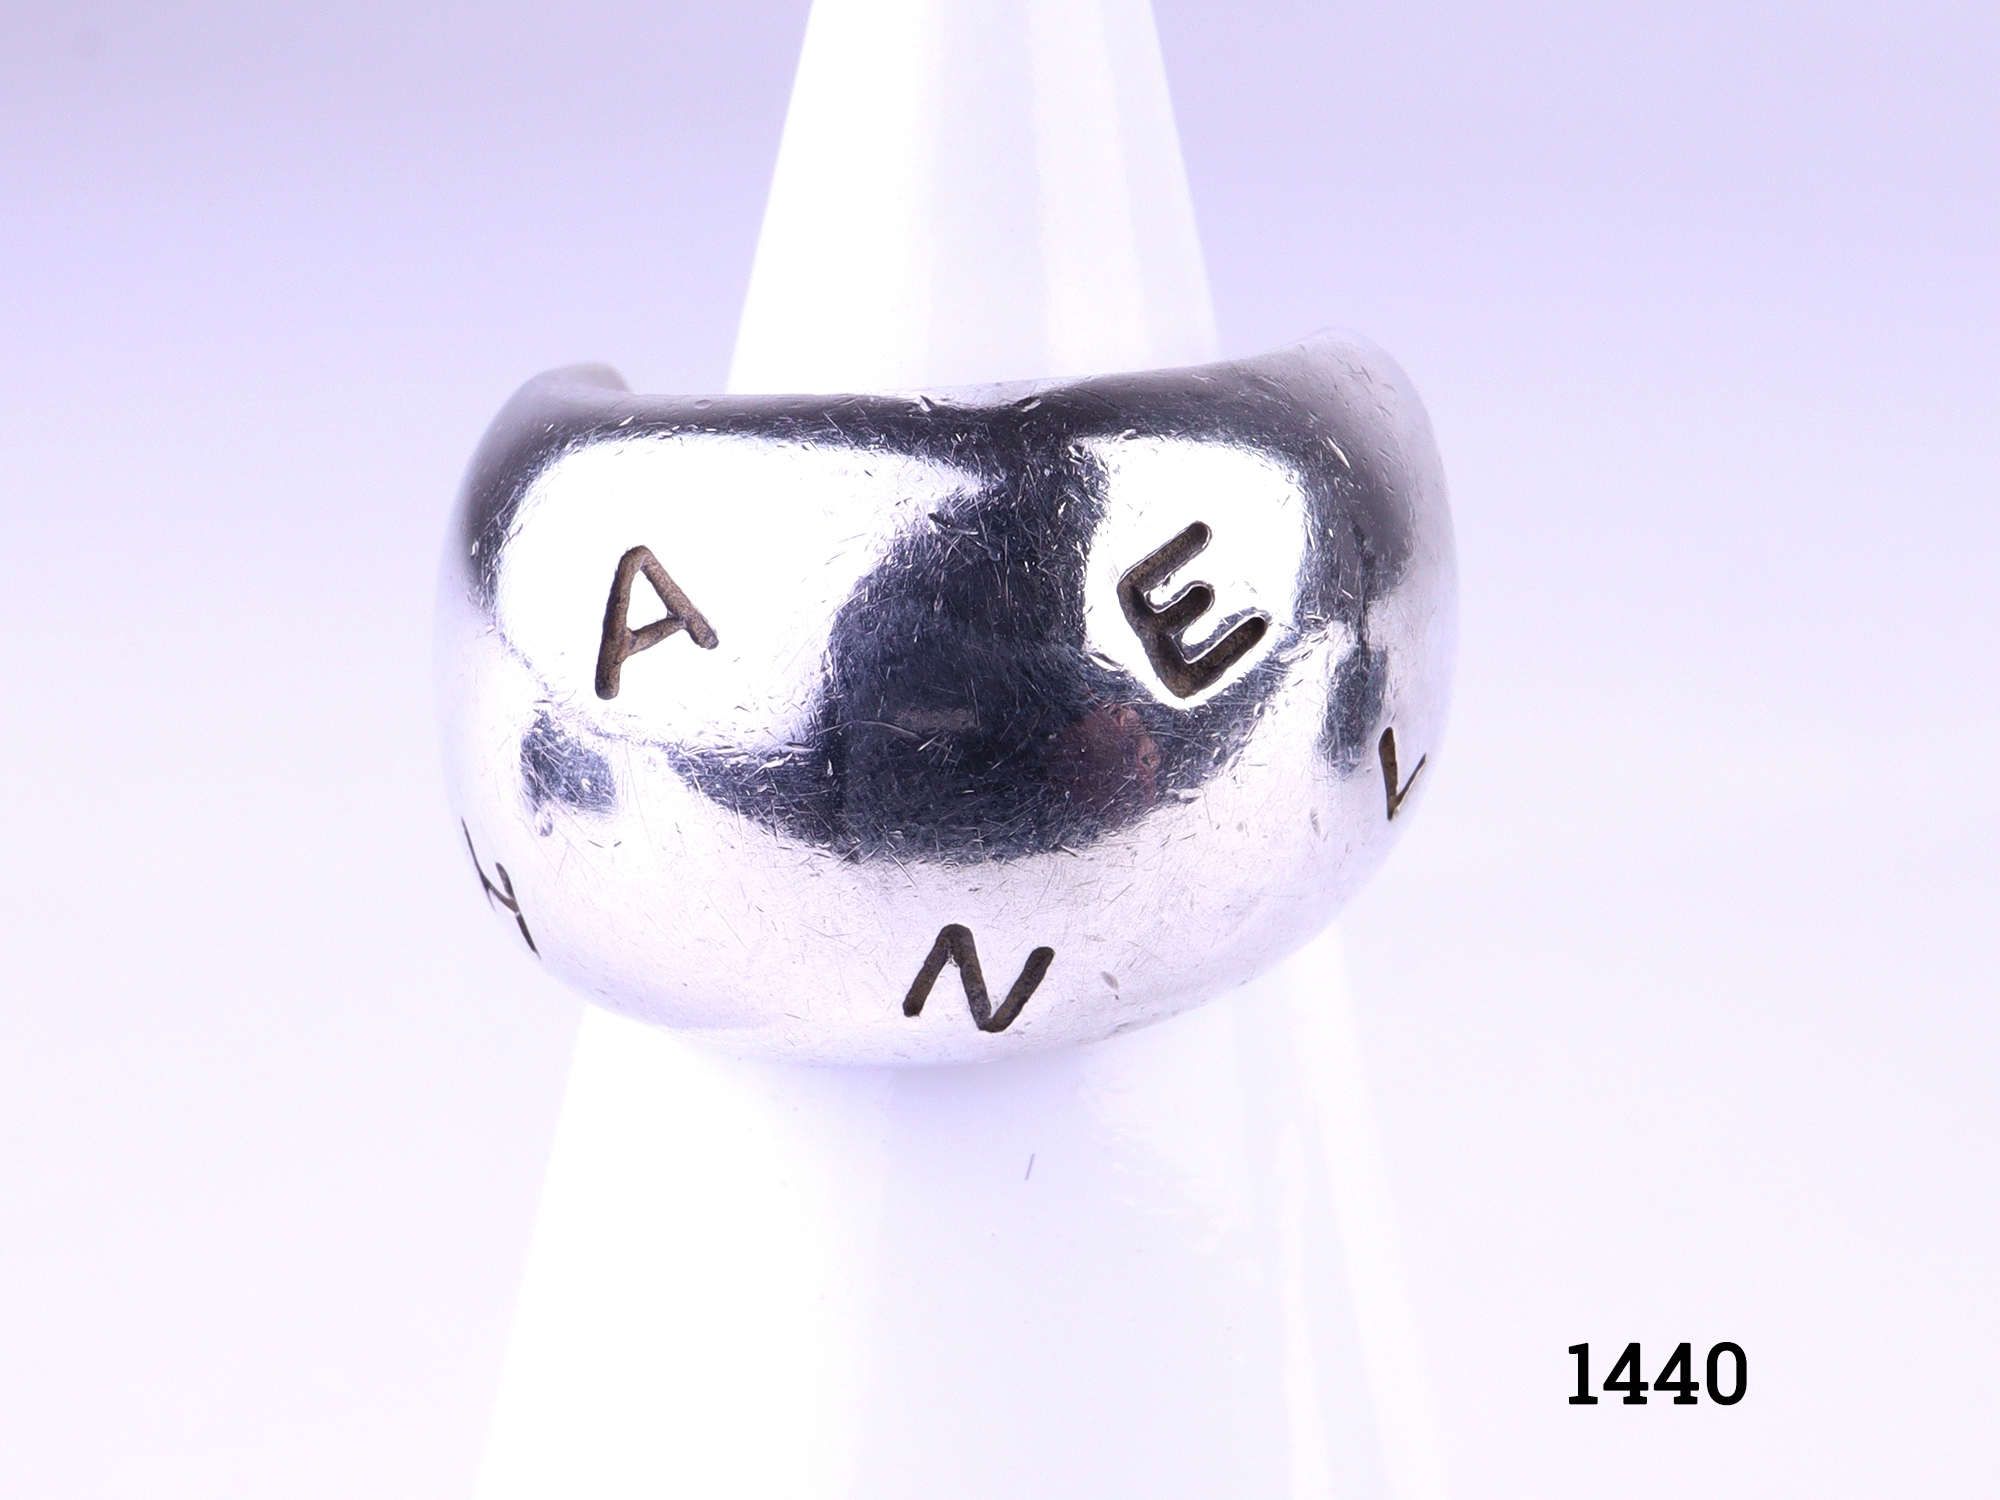 925 Sterling silver chunky Chanel ring. Width at front 11mm. Comes with Chanel pouch. A very small size H / 3.75